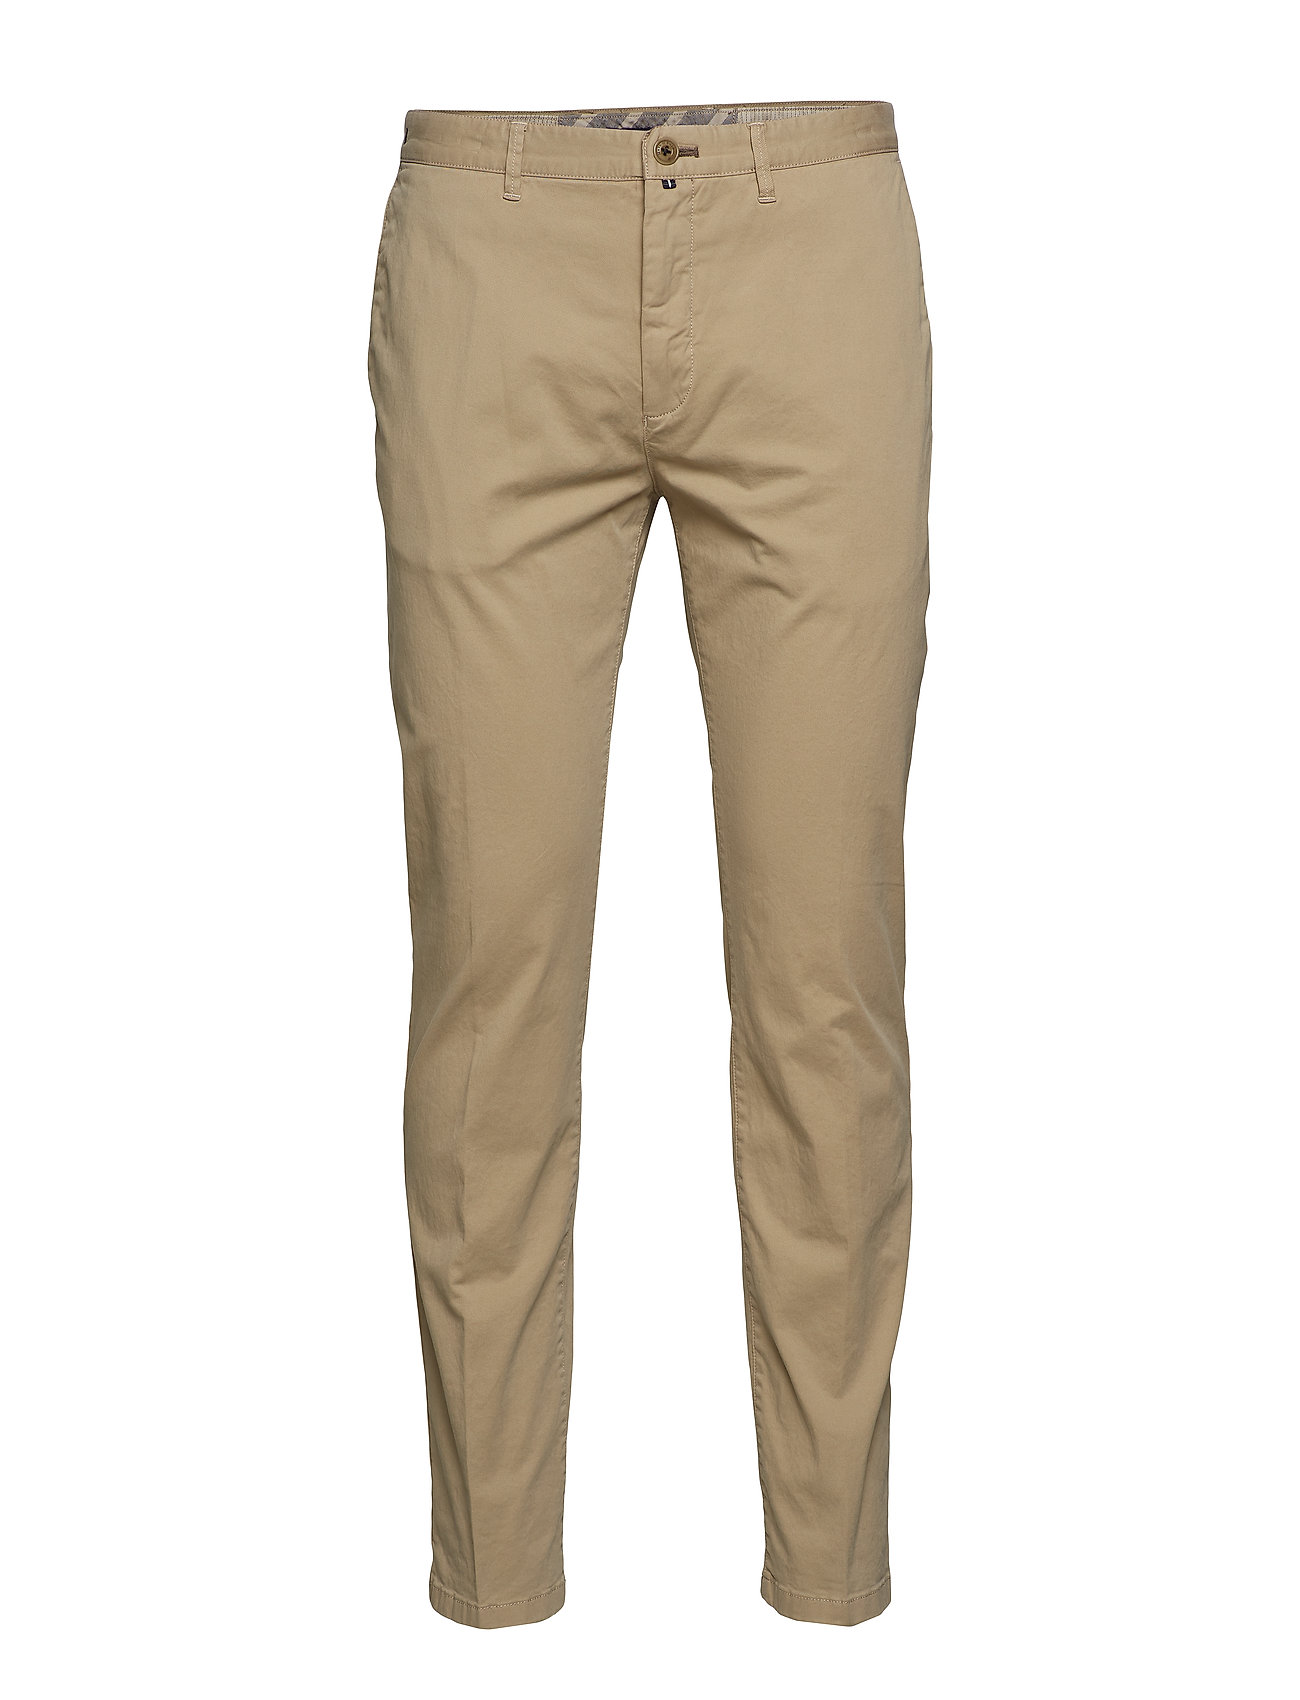 Marc O'Polo Chino Pants - SOYBEAN